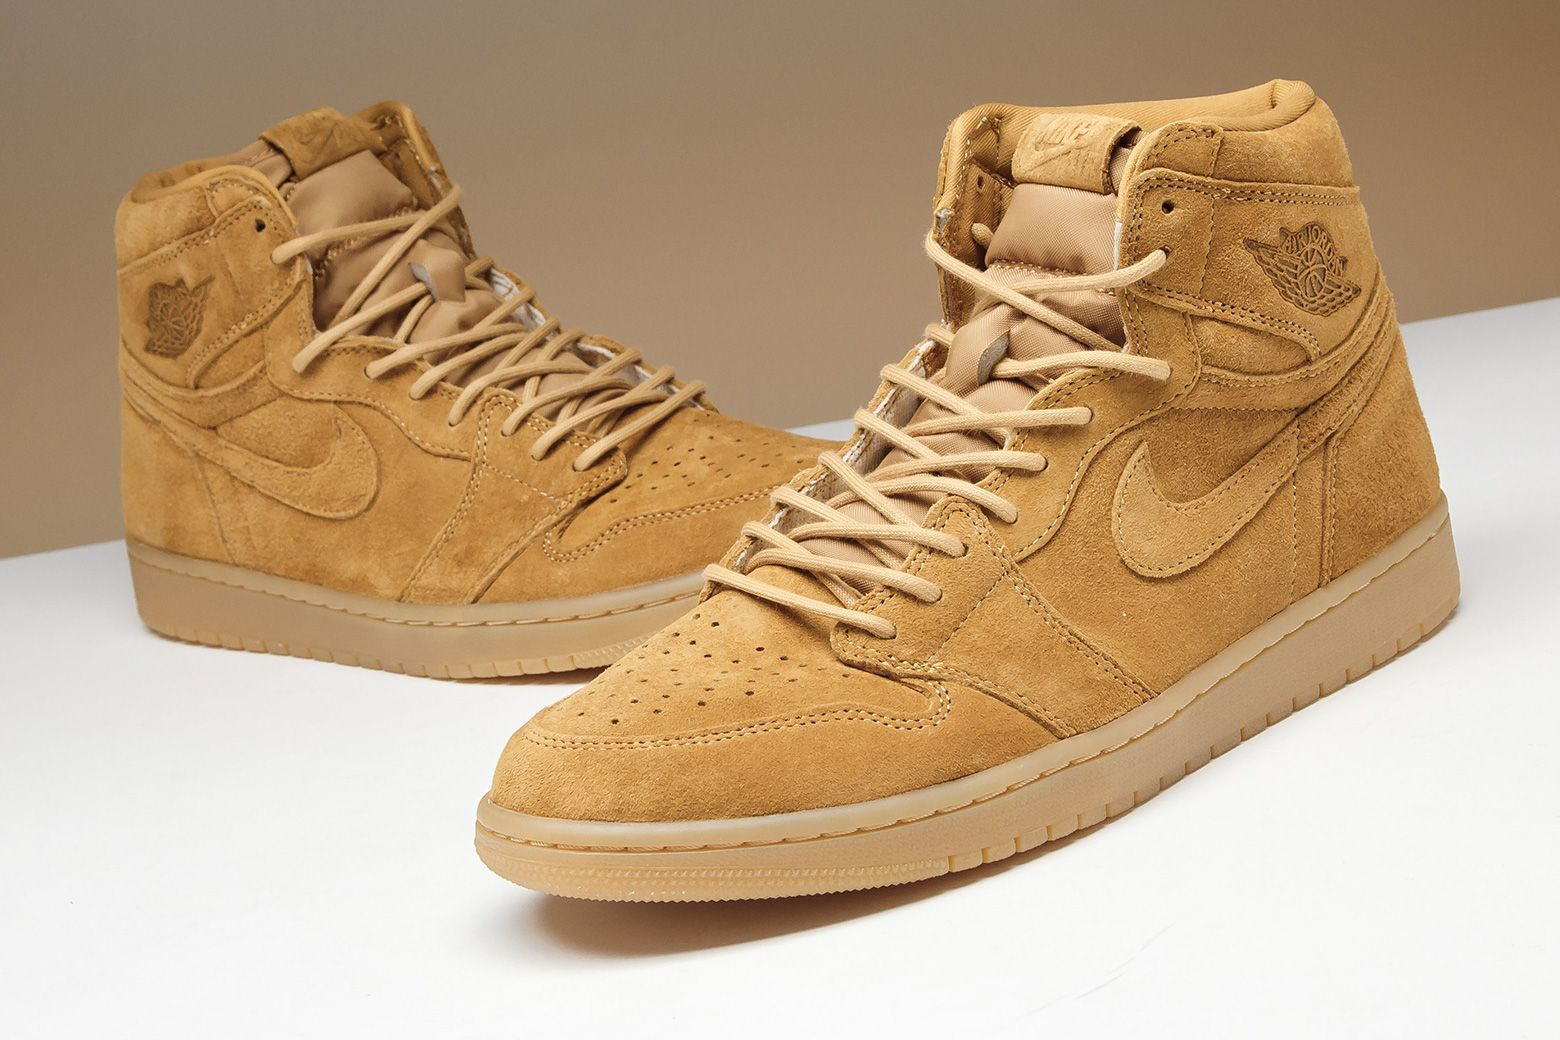 Air Jordan 1 Retro High Og Wheat 555088 710 With Images